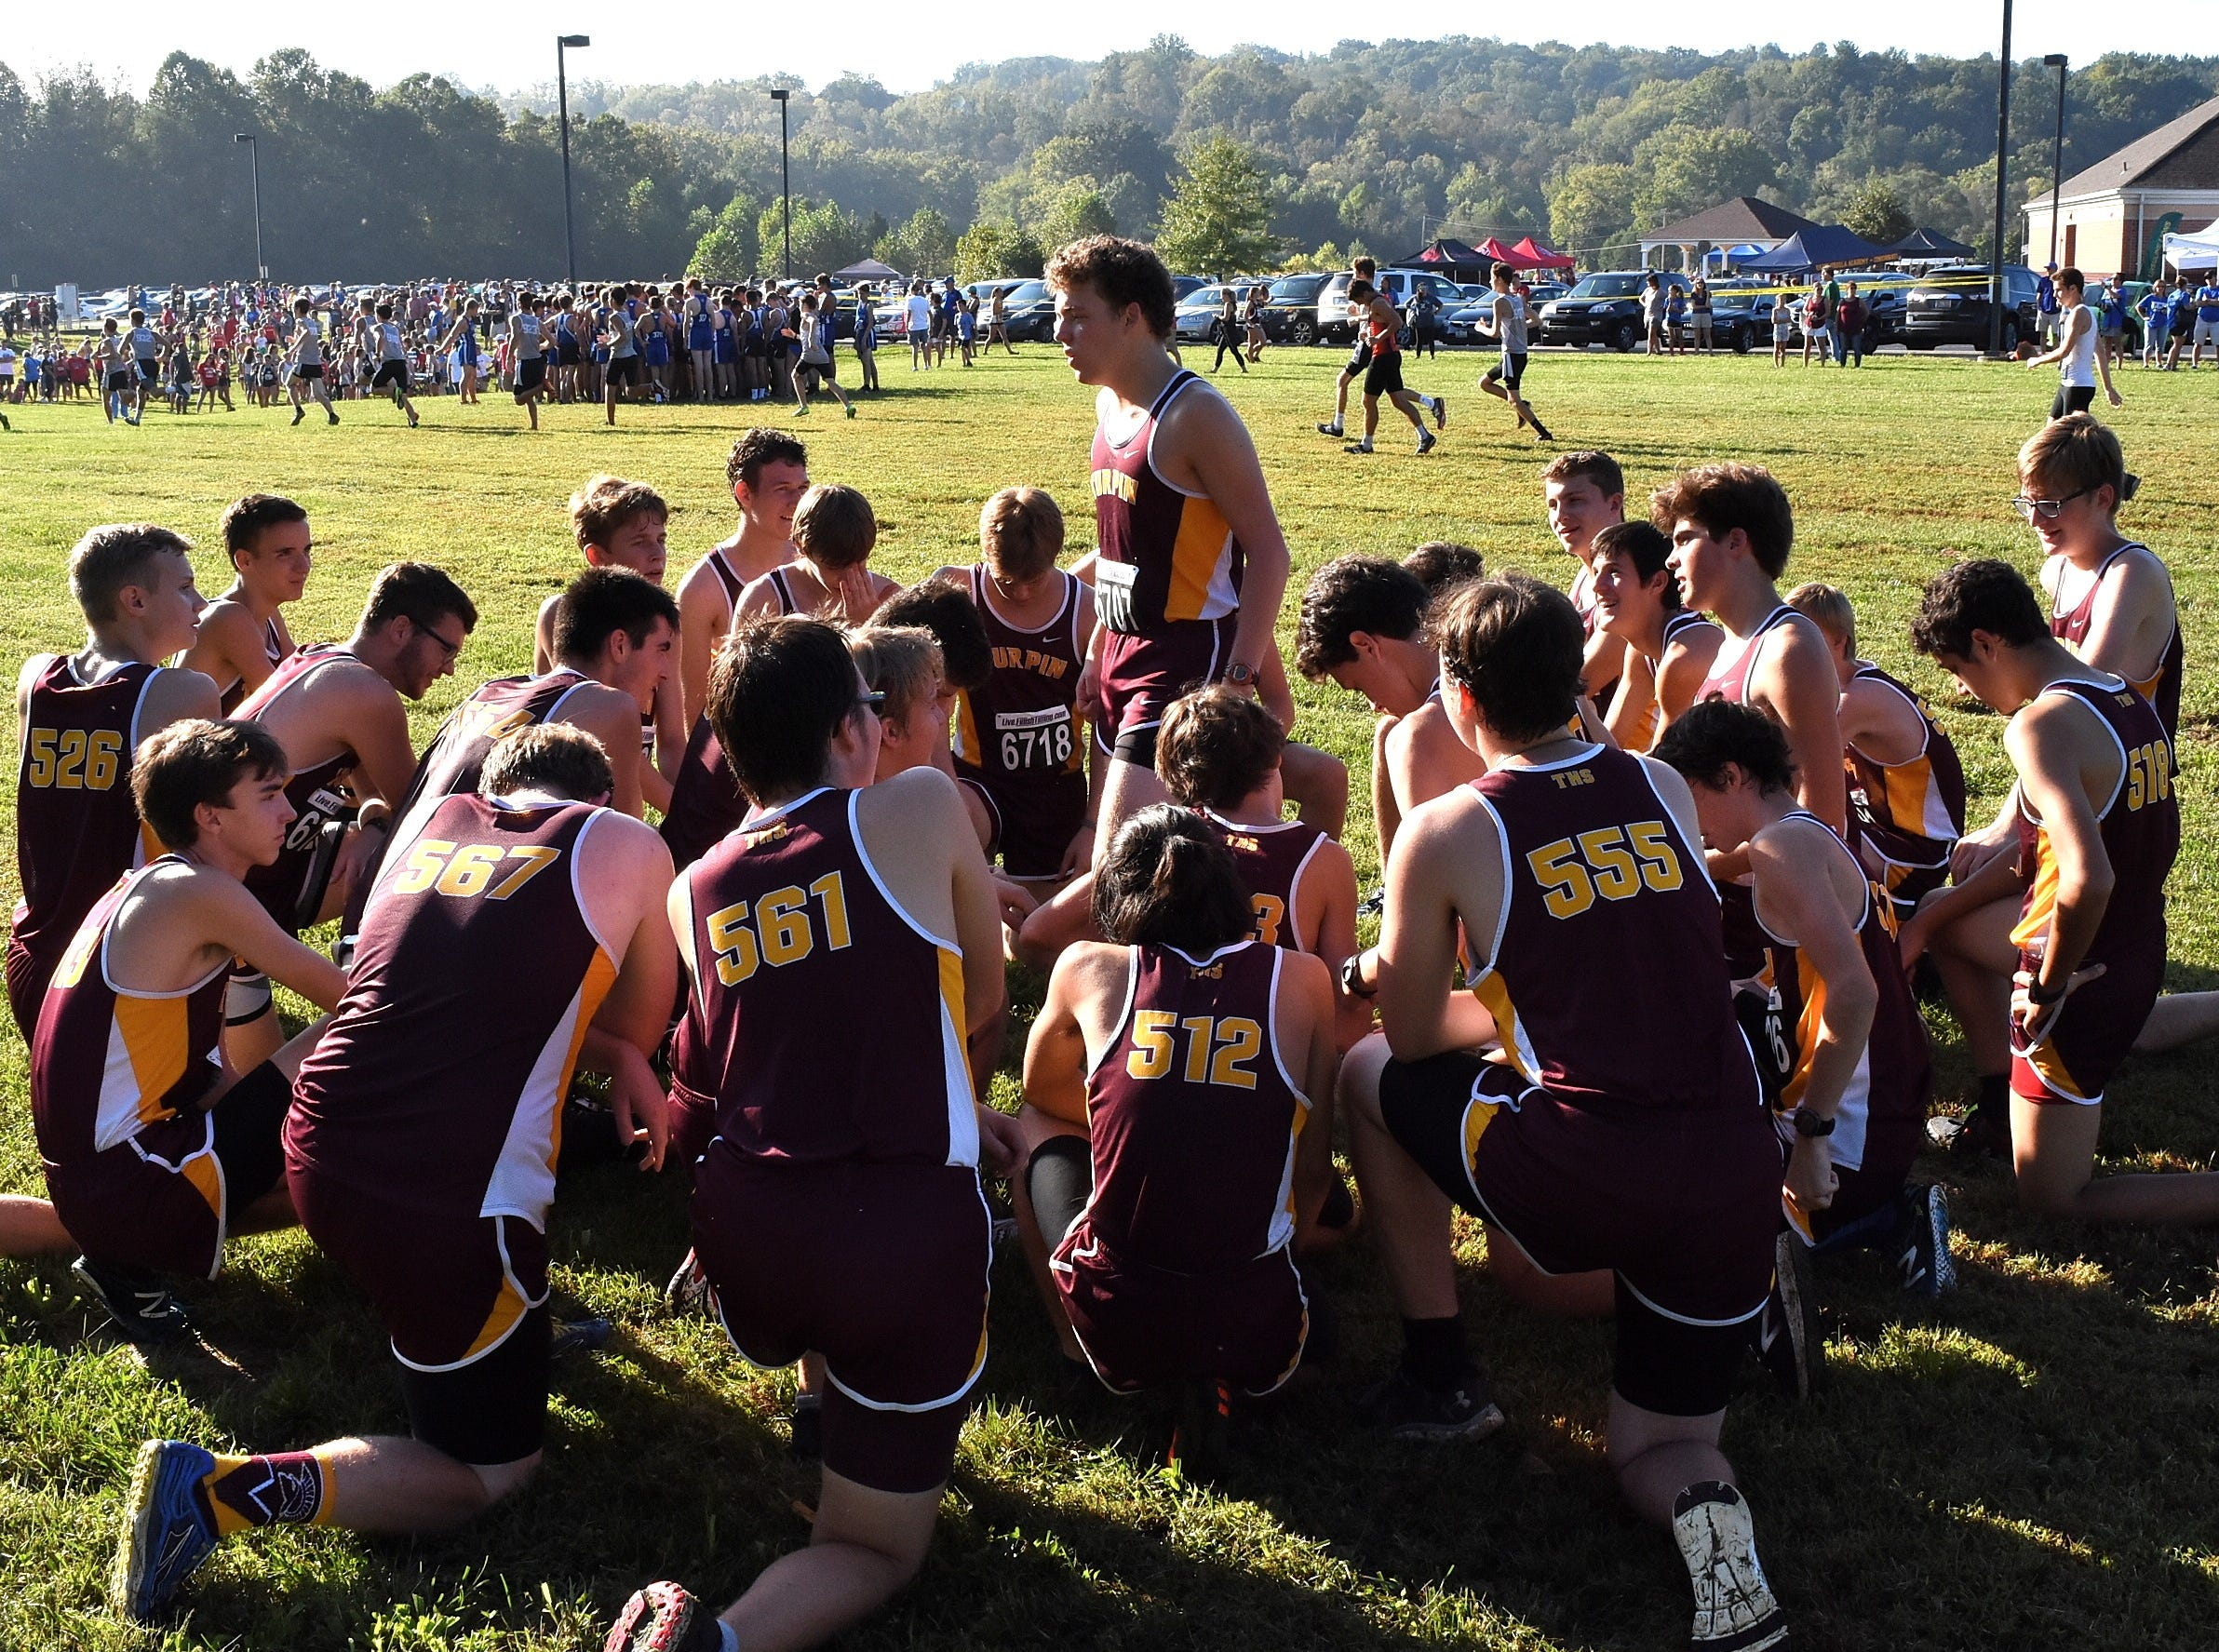 The Turpin runners get hyped and ready to run in the Boys 5K Open at the 2018 Milford Cross Country Invitational, Sept. 15, 2018.